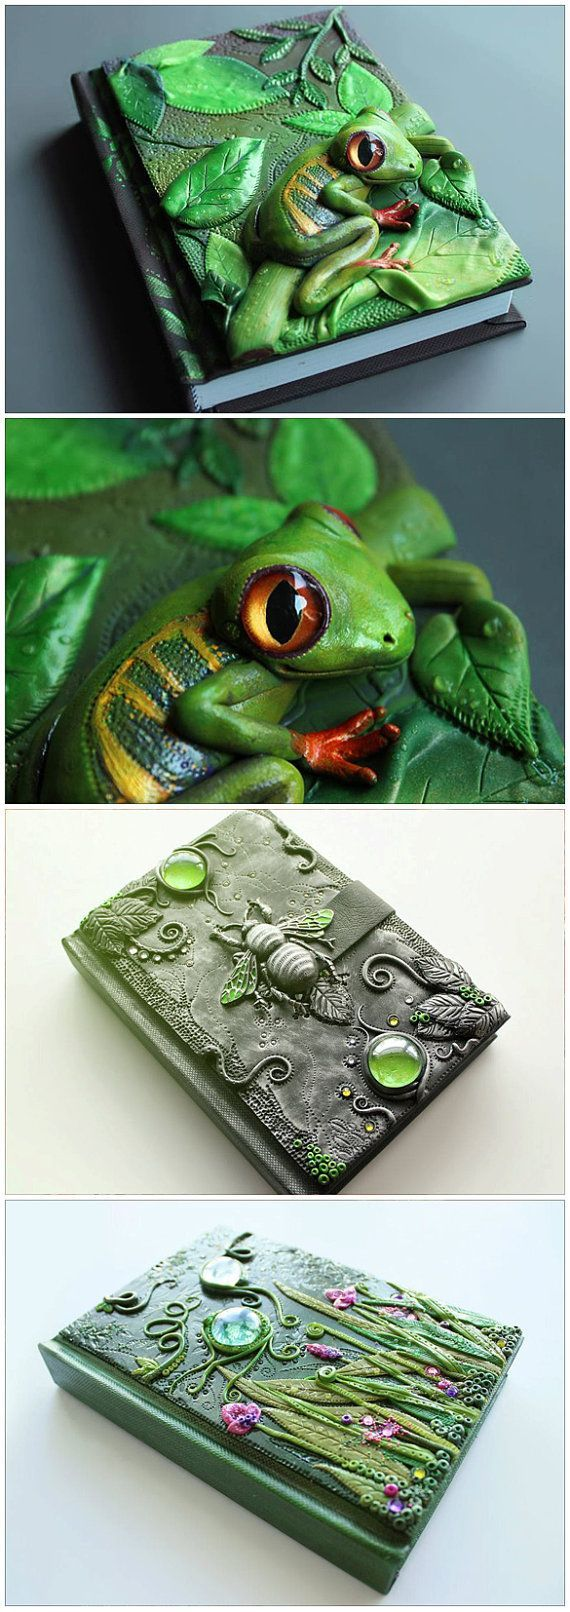 Yes, it is polymer clay - Frog journal secret diary by Etsy seller MyMandarinDucky. #Hobbies Leisure